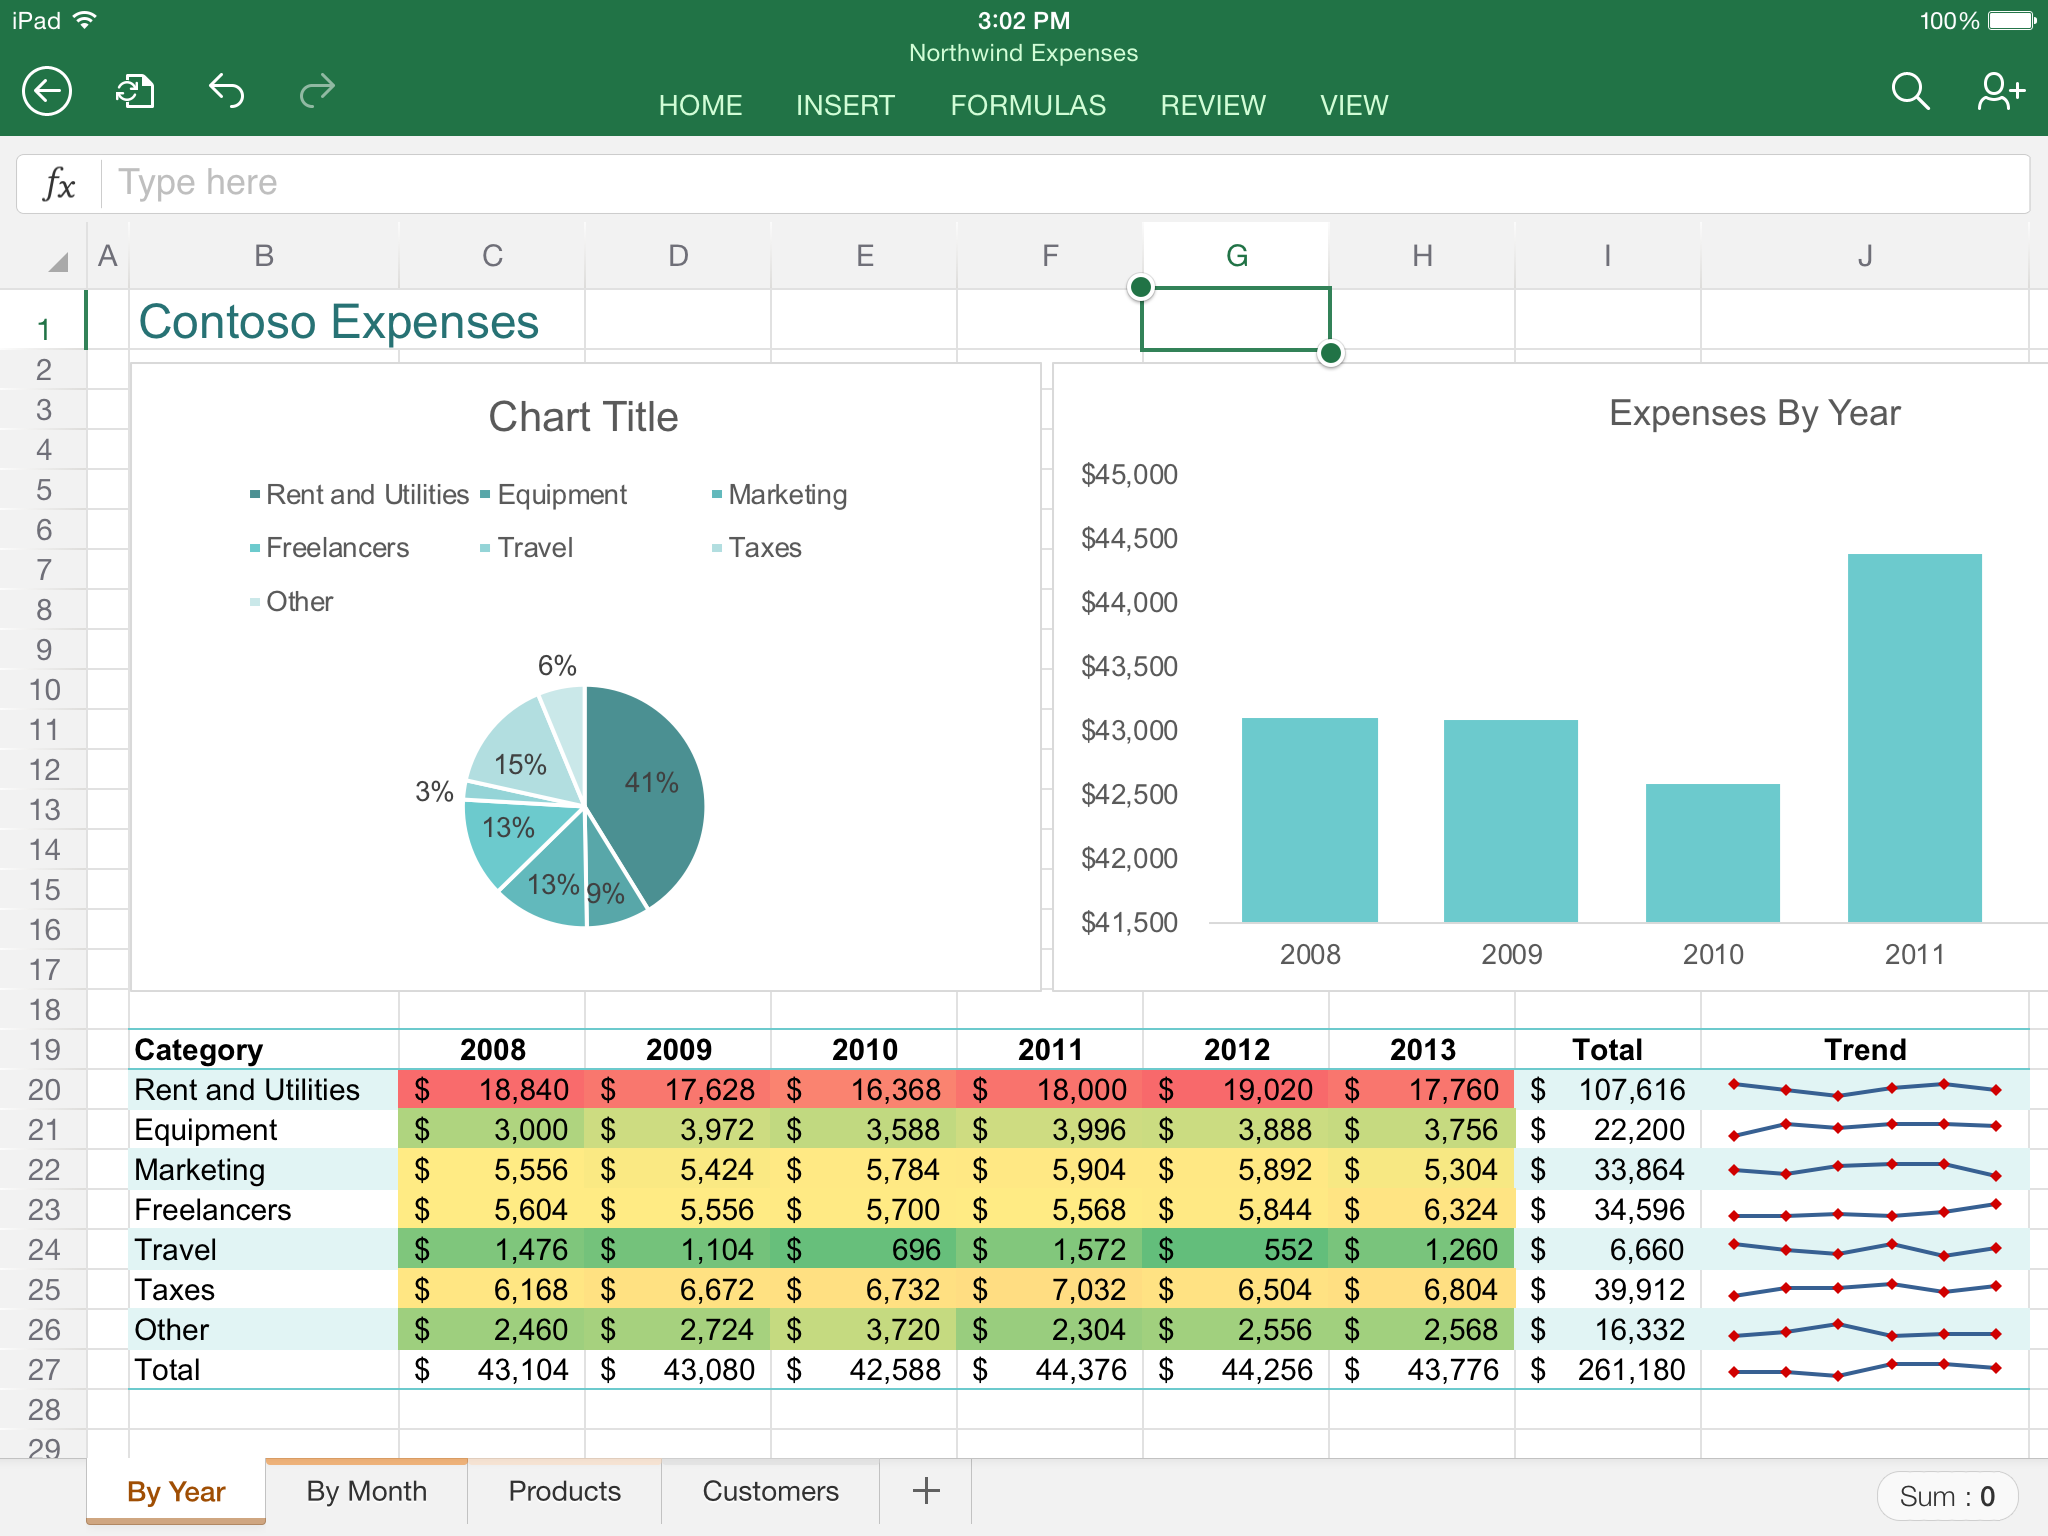 Ediblewildsus  Winning App Highlight Excel  Mobile Digital Now With Lovable Excel In Action With Attractive Excel Pivot Table Average Also Code Function In Excel In Addition Sample Excel Spreadsheet Data And Data Analysis Add In Excel  As Well As Copy Text From Pdf To Excel Additionally Residuals Excel From Youstonybrookedu With Ediblewildsus  Lovable App Highlight Excel  Mobile Digital Now With Attractive Excel In Action And Winning Excel Pivot Table Average Also Code Function In Excel In Addition Sample Excel Spreadsheet Data From Youstonybrookedu